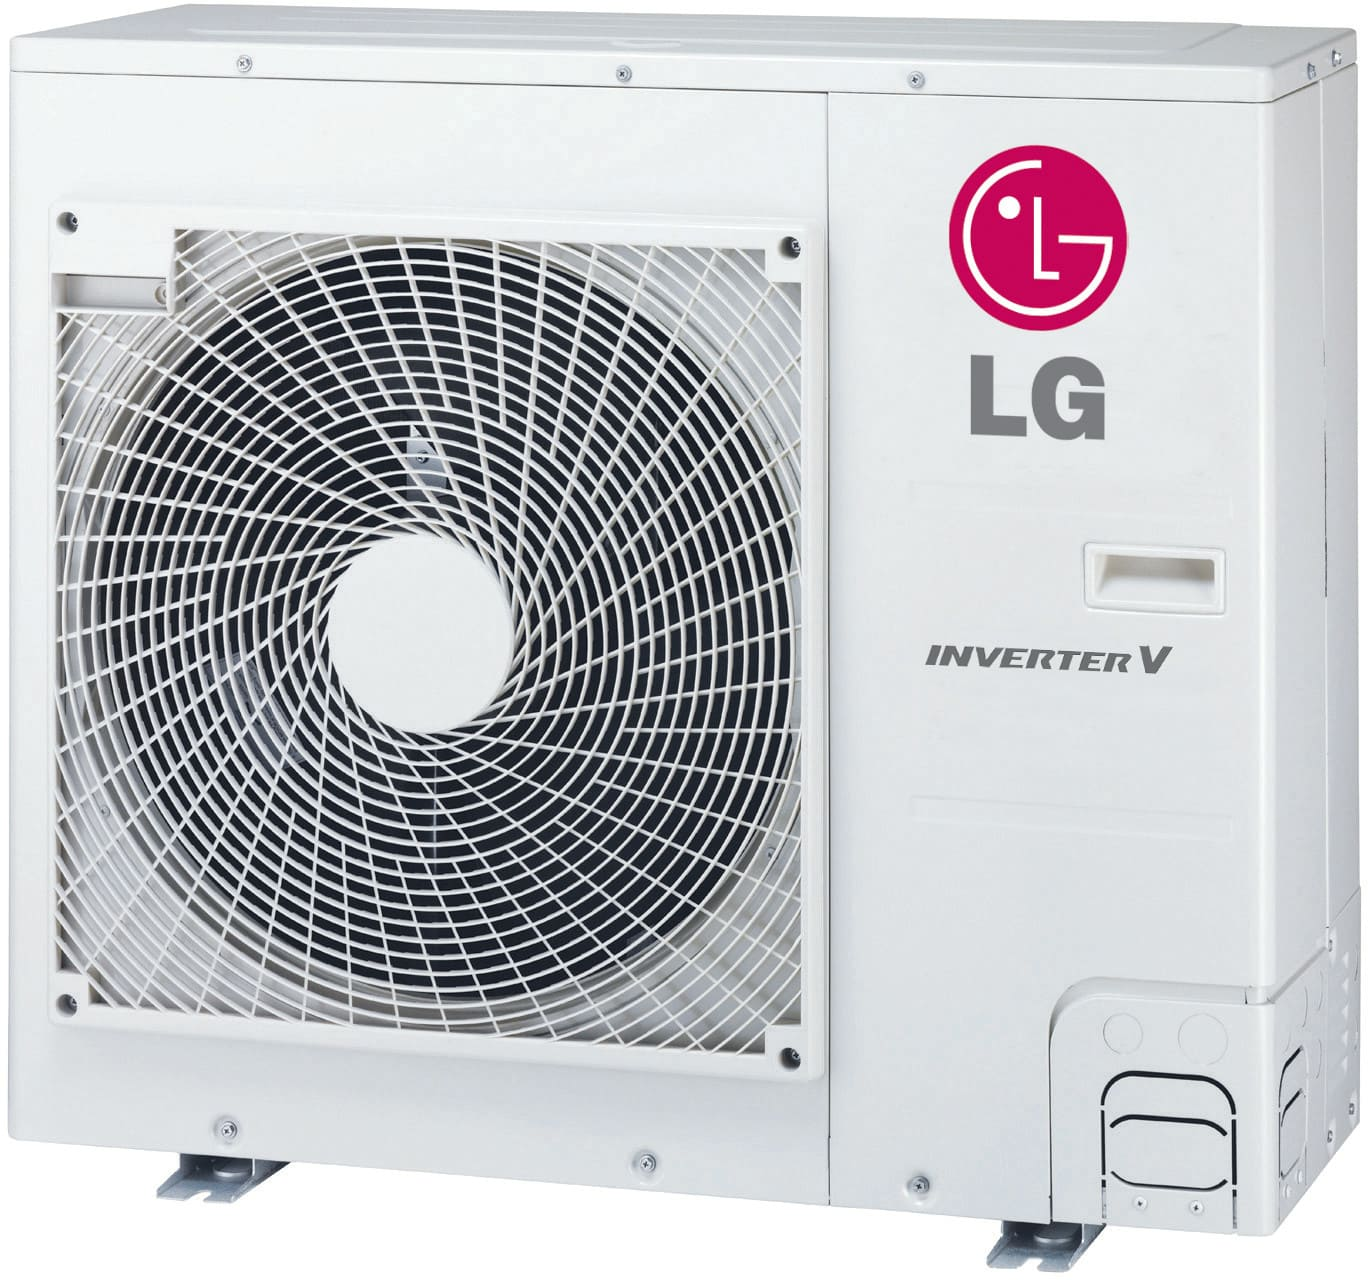 LG LMU36CHV 36,000 BTU Class Multi-Zone Ductless Split Outdoor Air  Conditioner with Inverter (Variable Speed Compressor), Low Ambient Operation,  ...